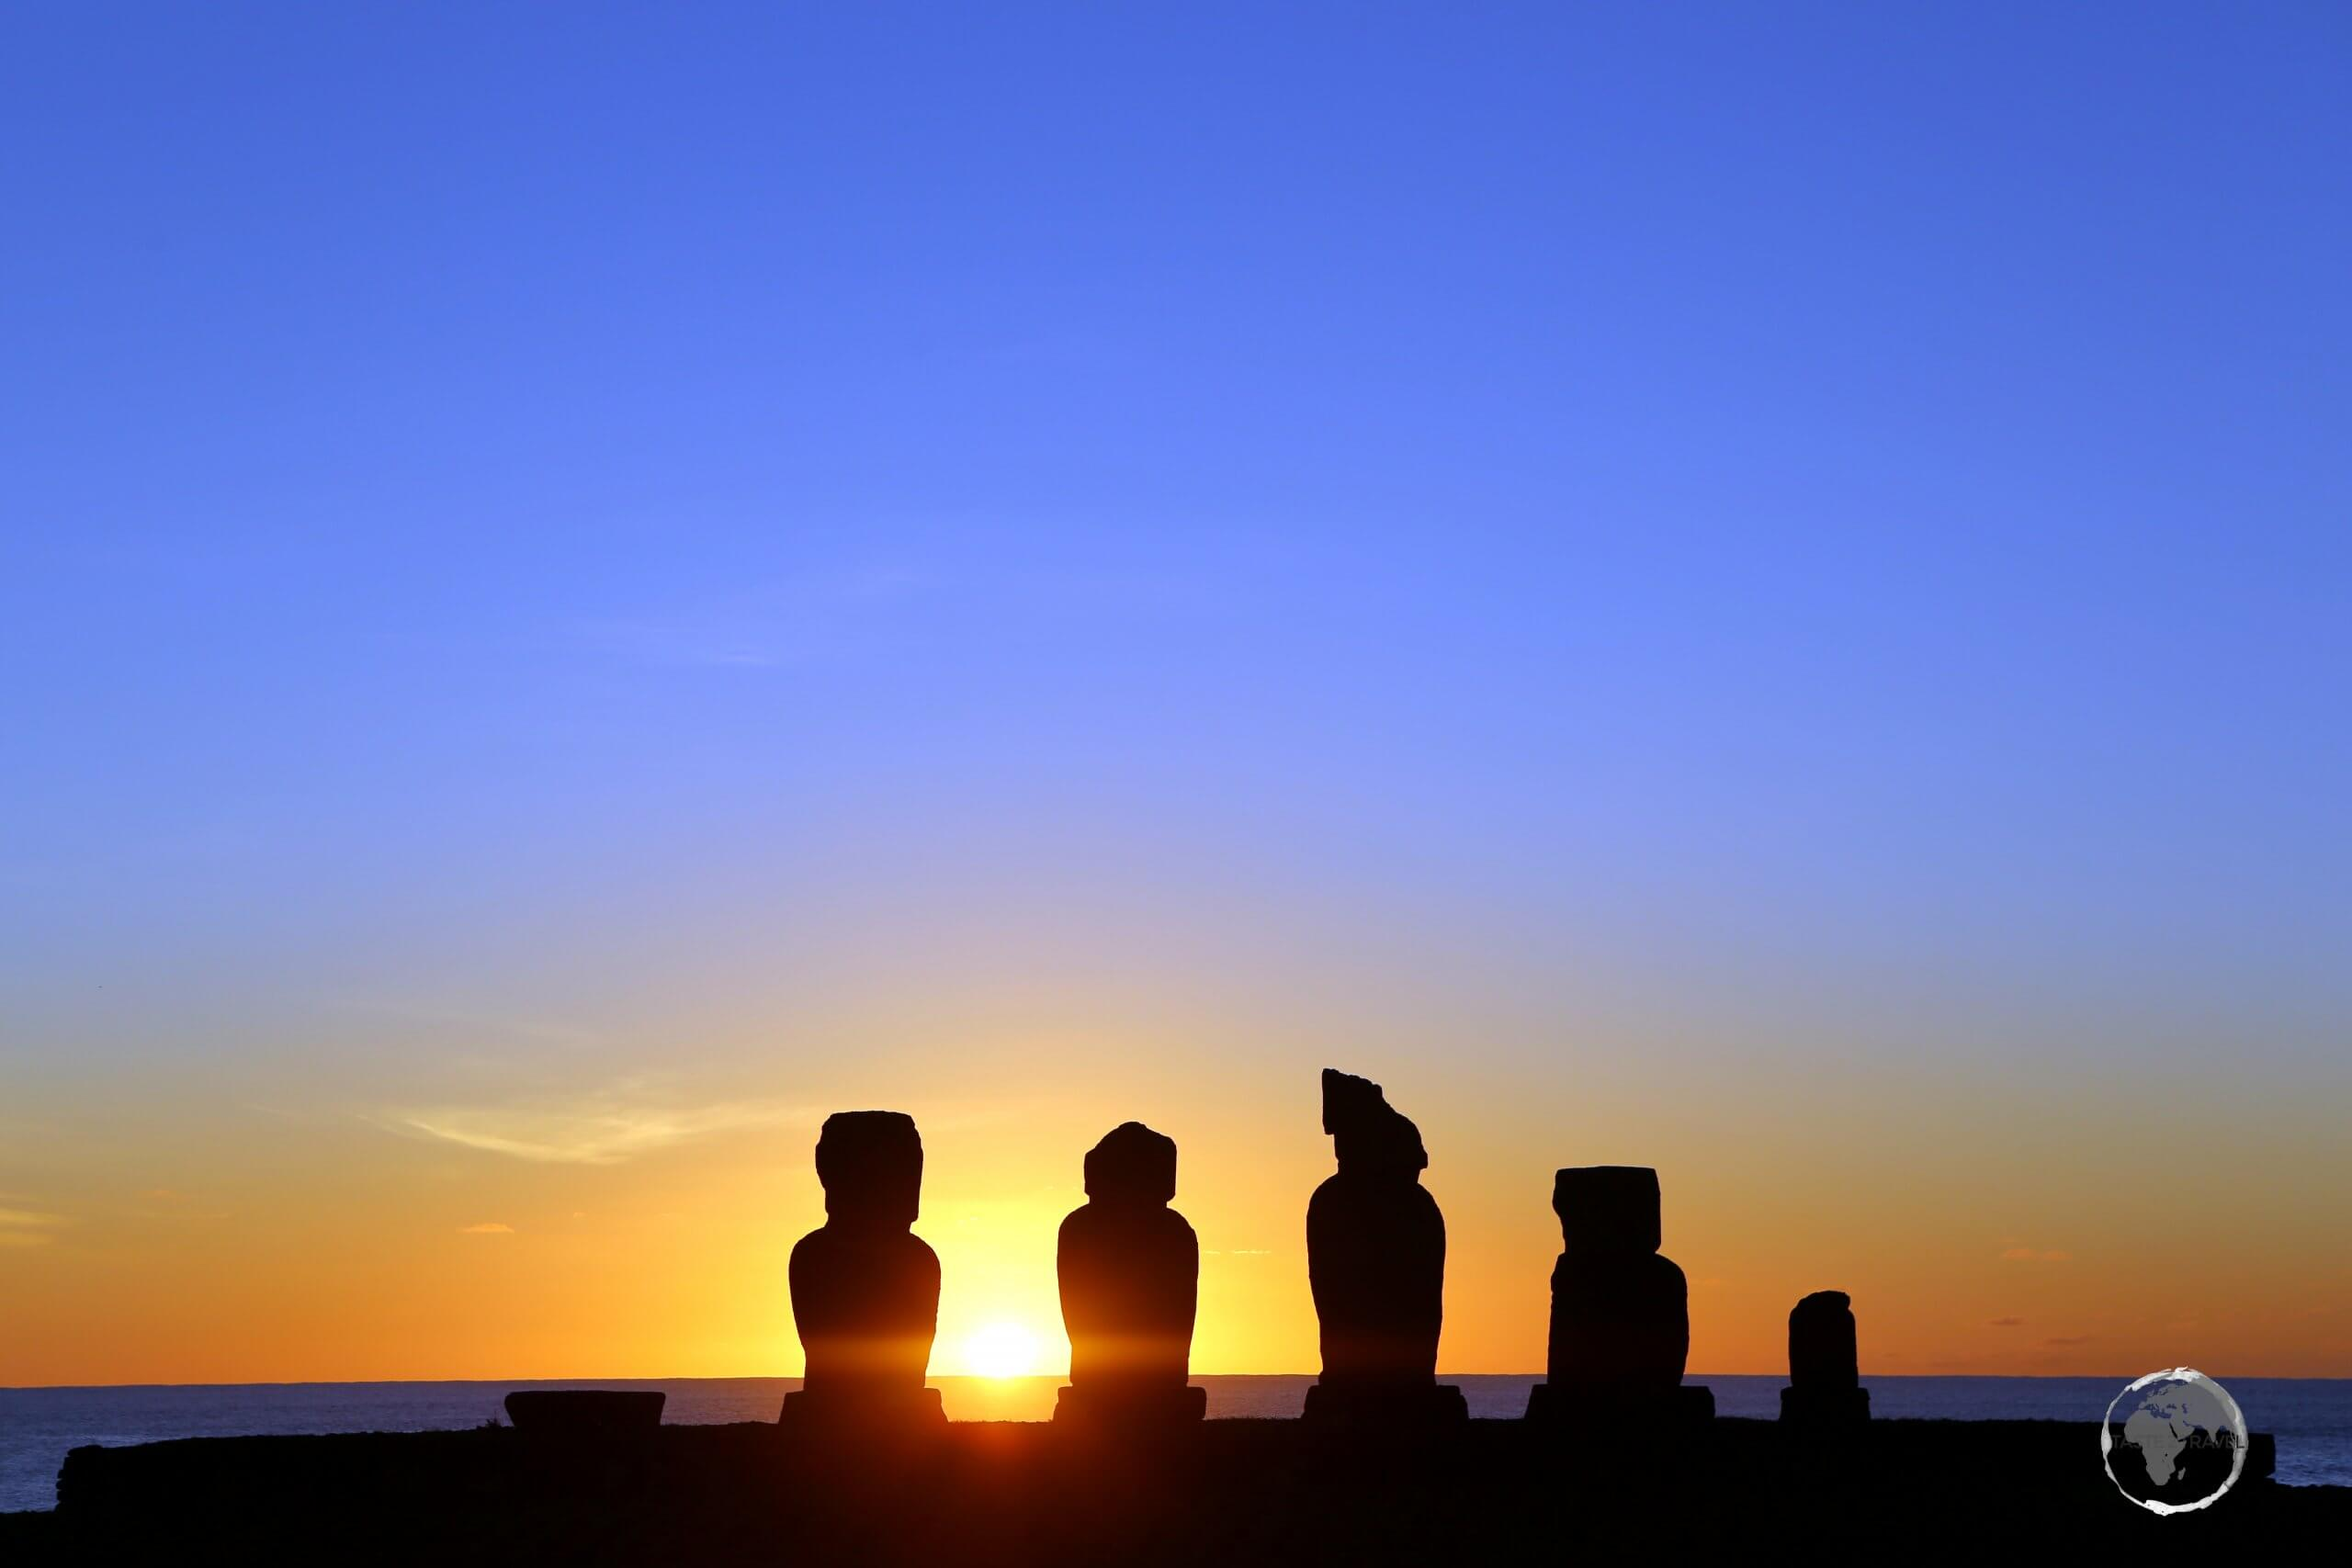 The archaeological site of Ahu Tahai is home to one of the oldest settlements on Easter island, with evidence of human activity dating back to 700 AD.